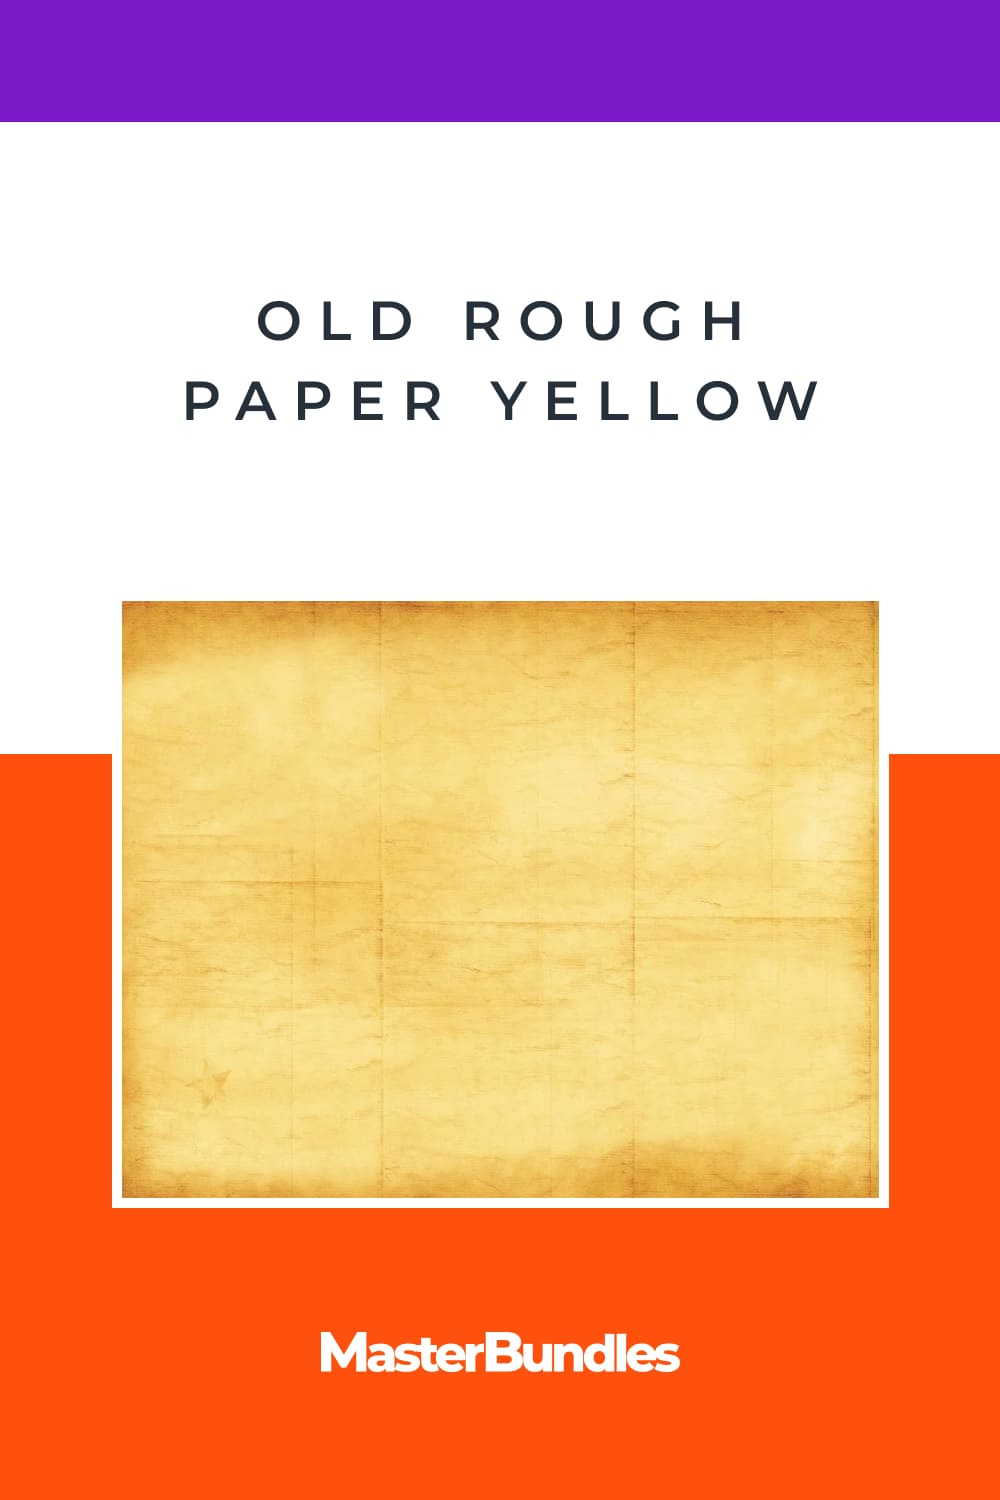 Old Rough Paper Yellow.